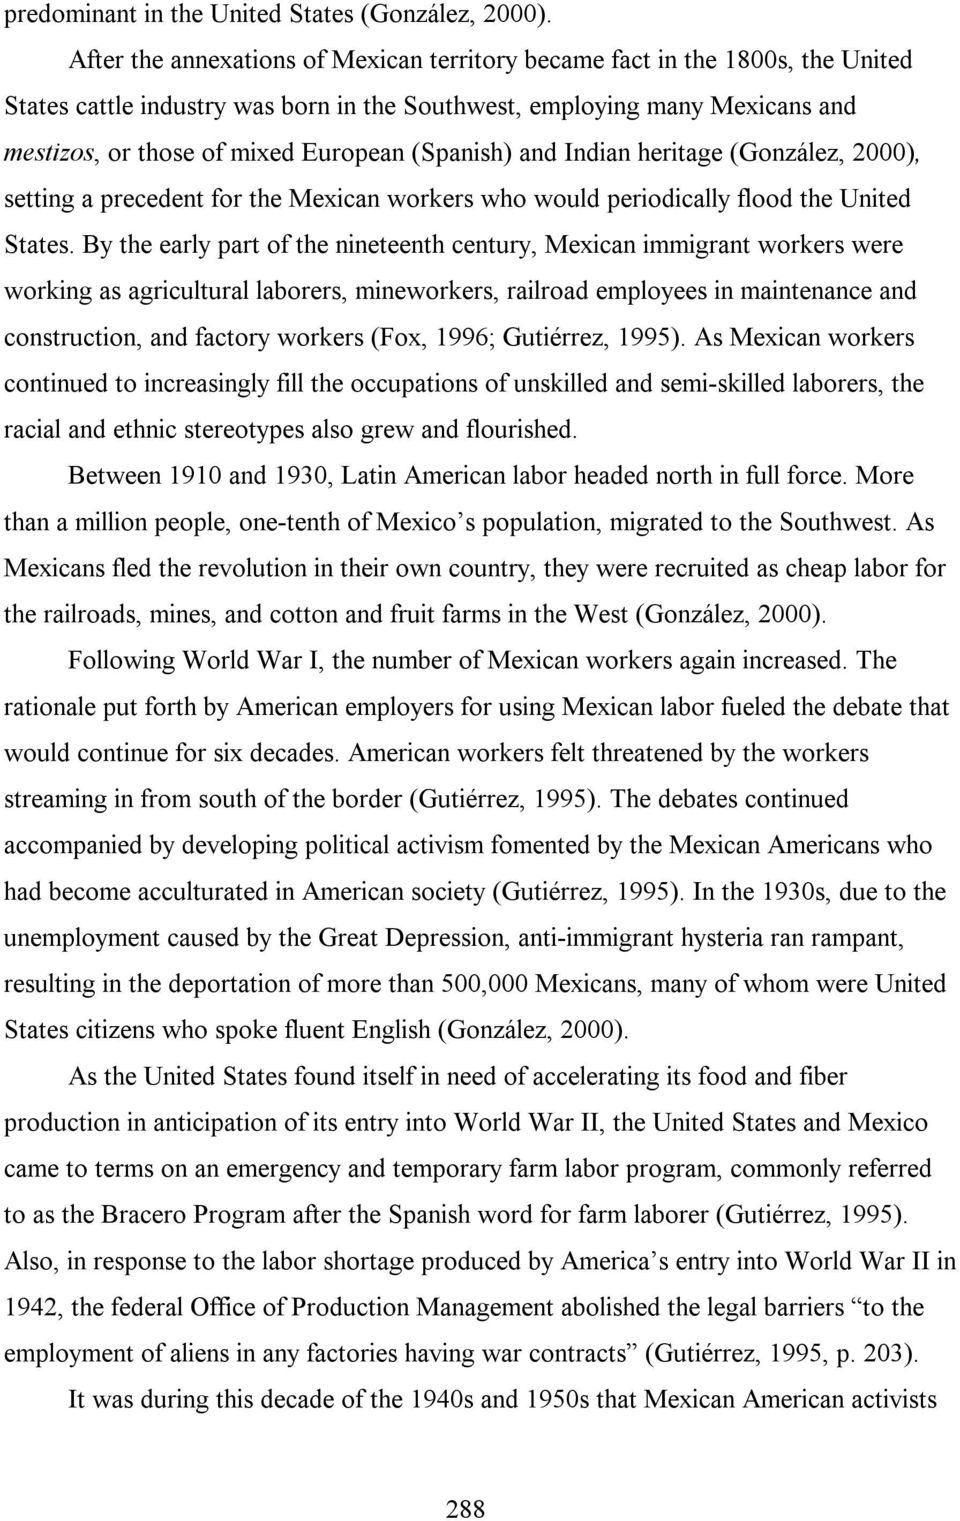 (Spanish) and Indian heritage (González, 2000), setting a precedent for the Mexican workers who would periodically flood the United States.